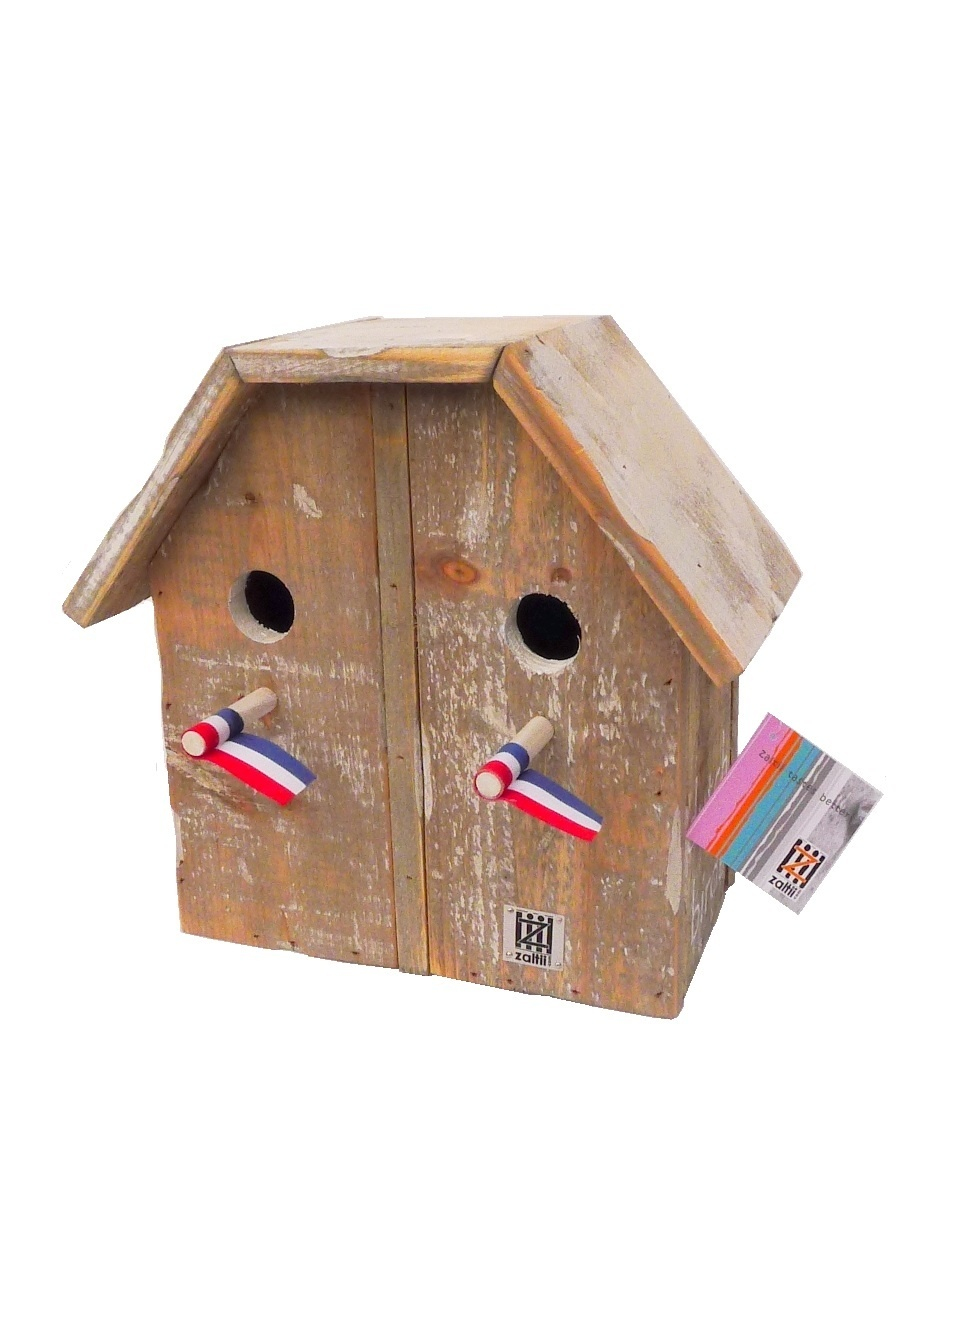 birdhouse old dutch 2 under 1 roof-4